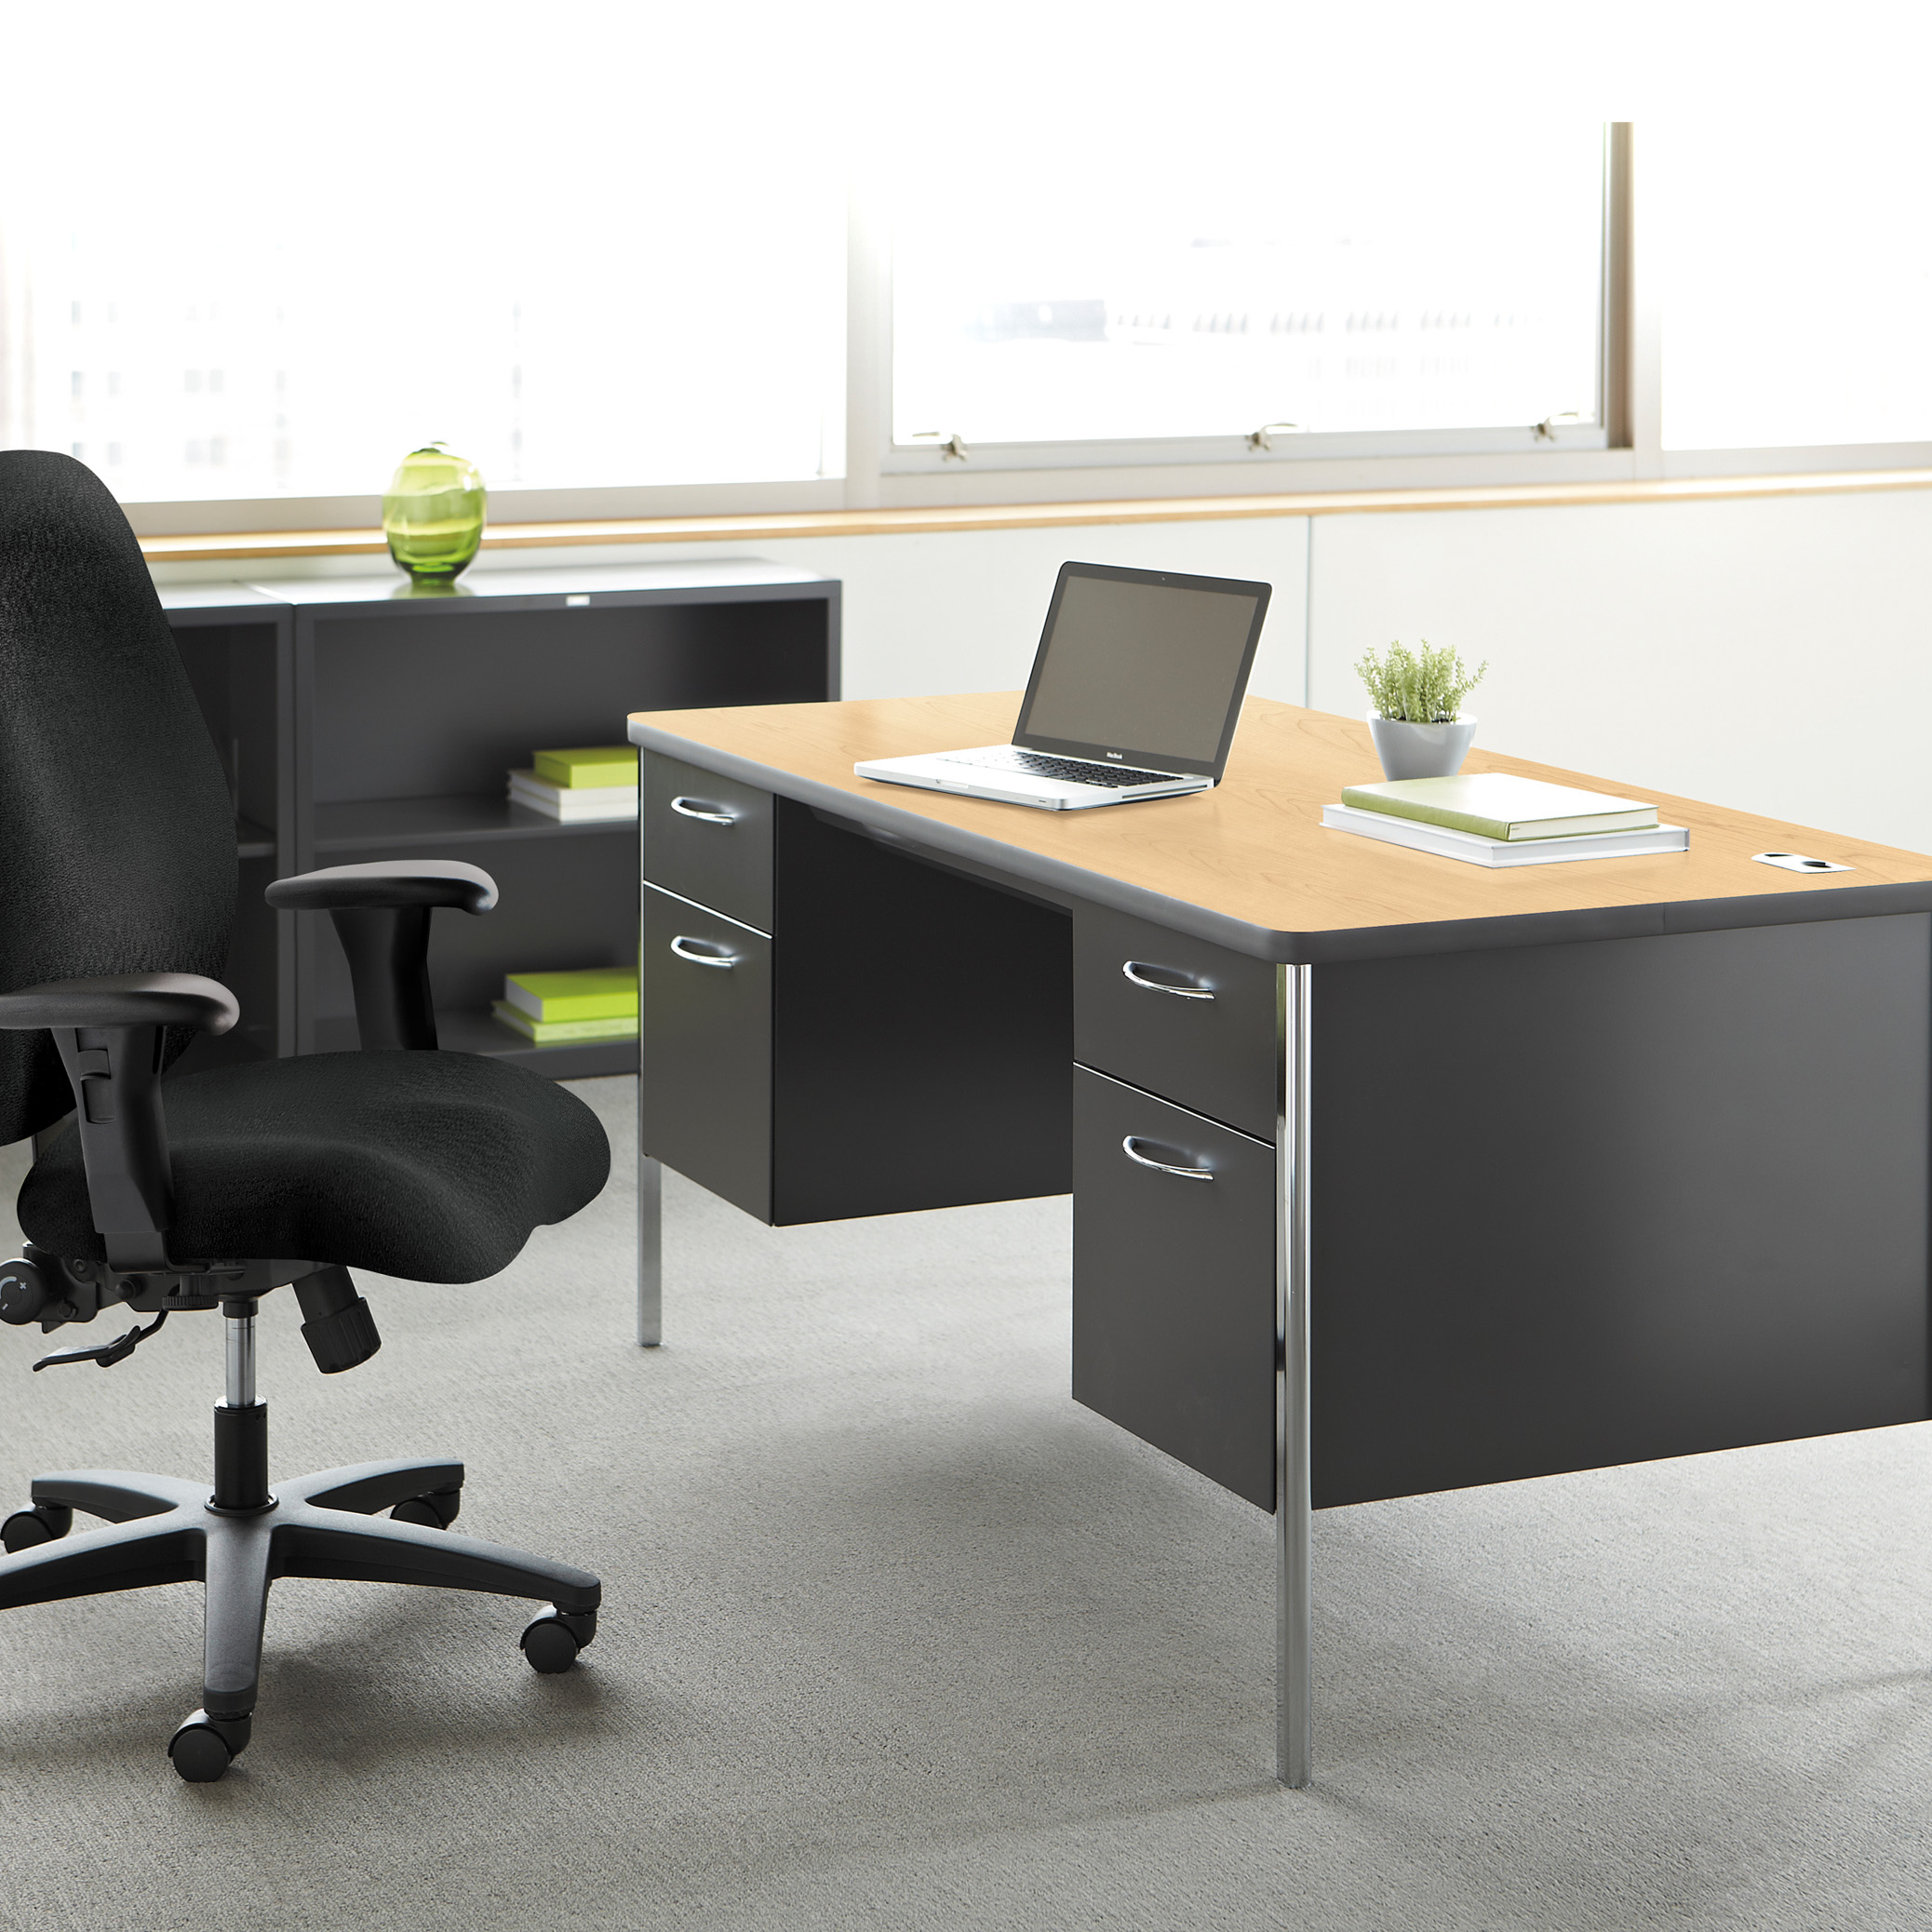 mentor office furniture chicago new rental used